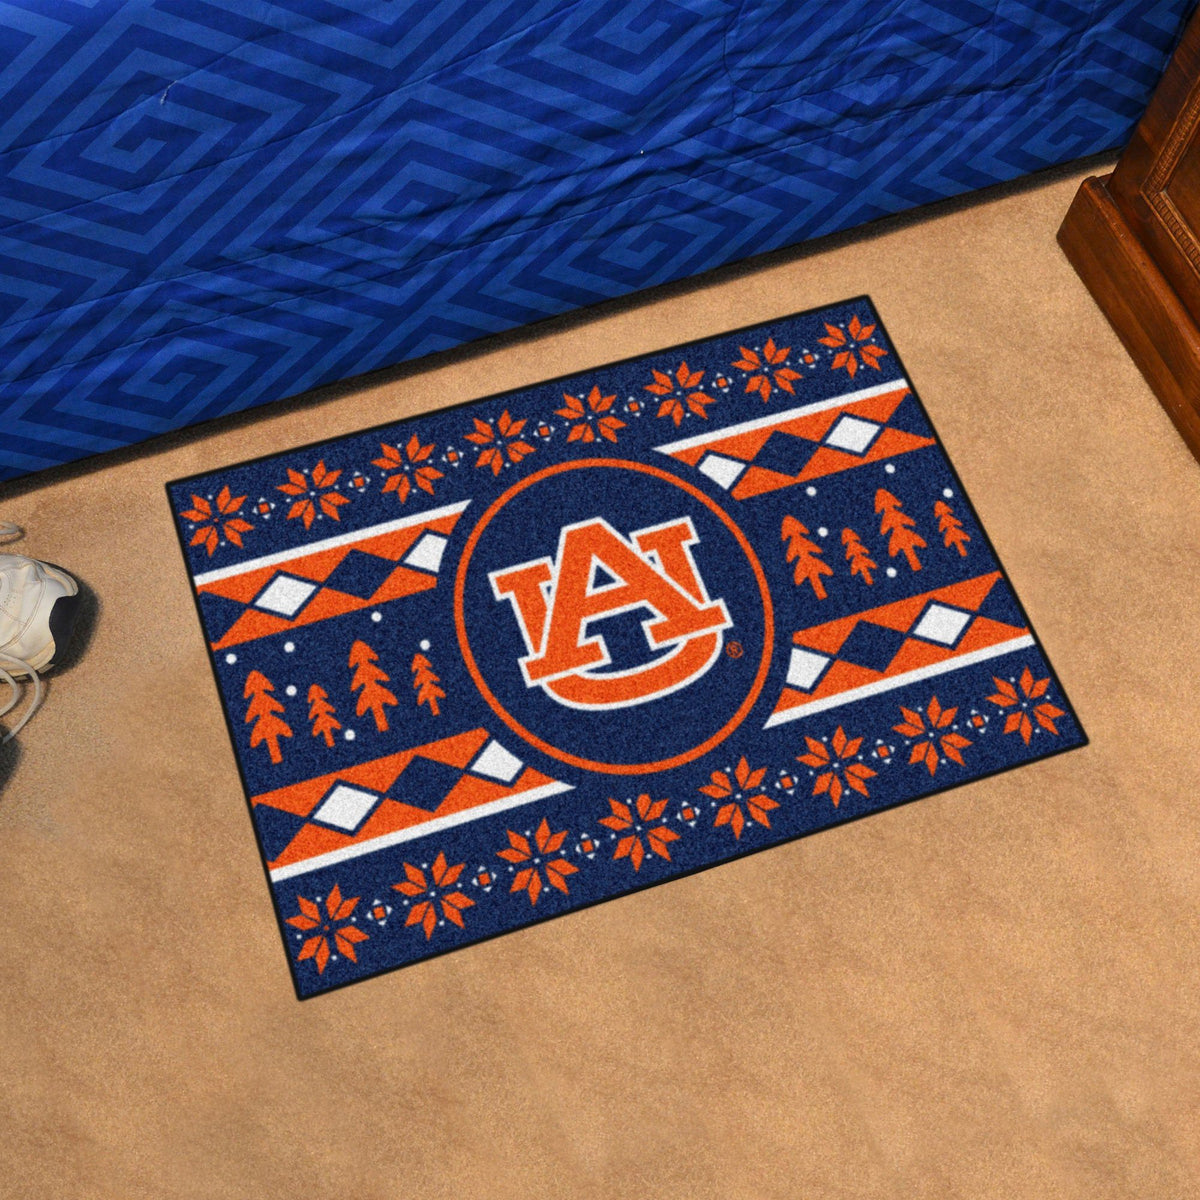 Collegiate - Holiday Sweater Starter Mat Collegiate Mats, Rectangular Mats, Holiday Sweater Starter Mat, Collegiate, Home Fan Mats Auburn